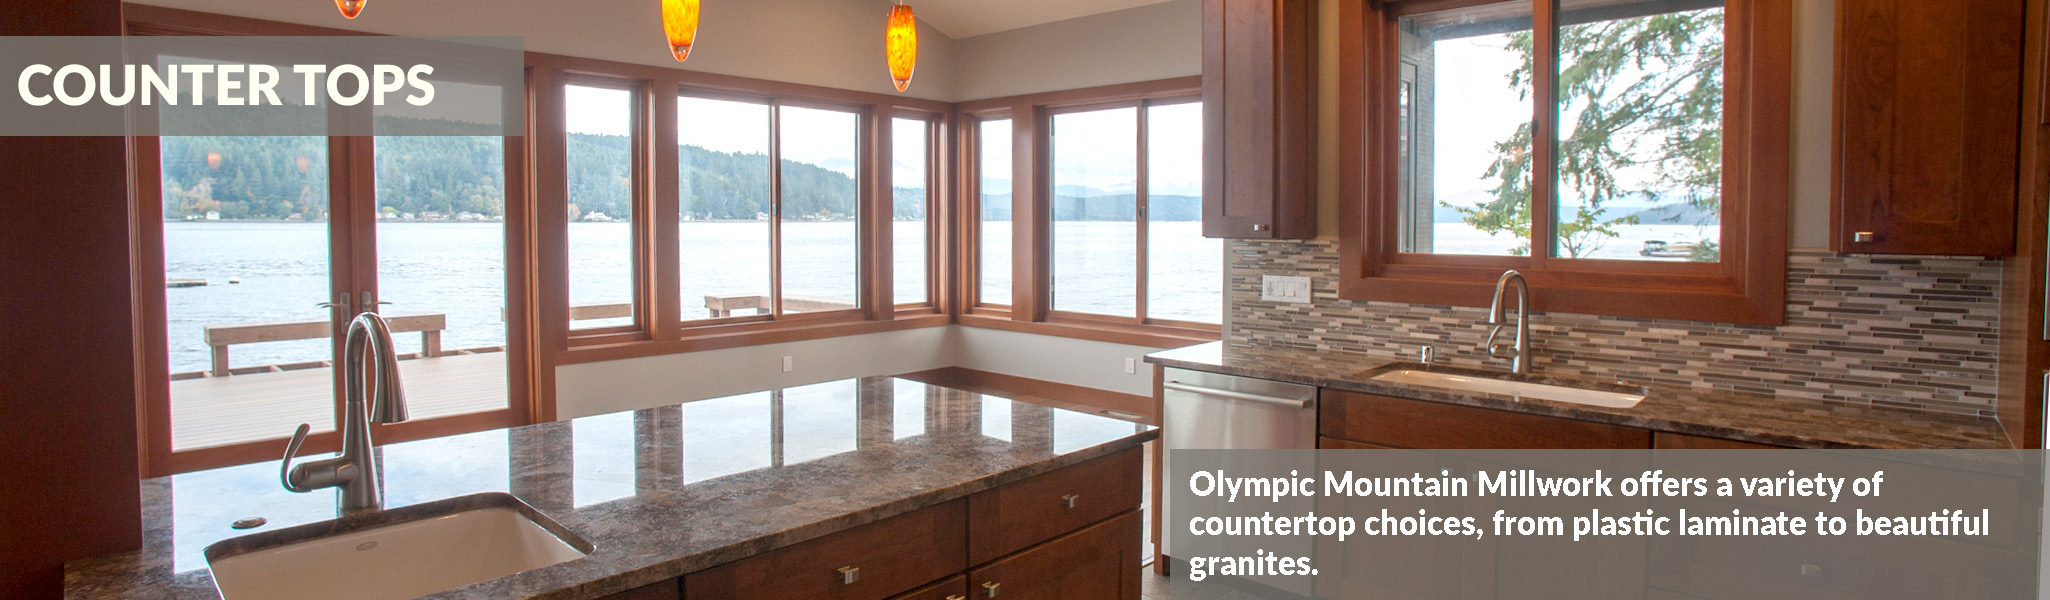 Olympic Mountain Millwork Counters